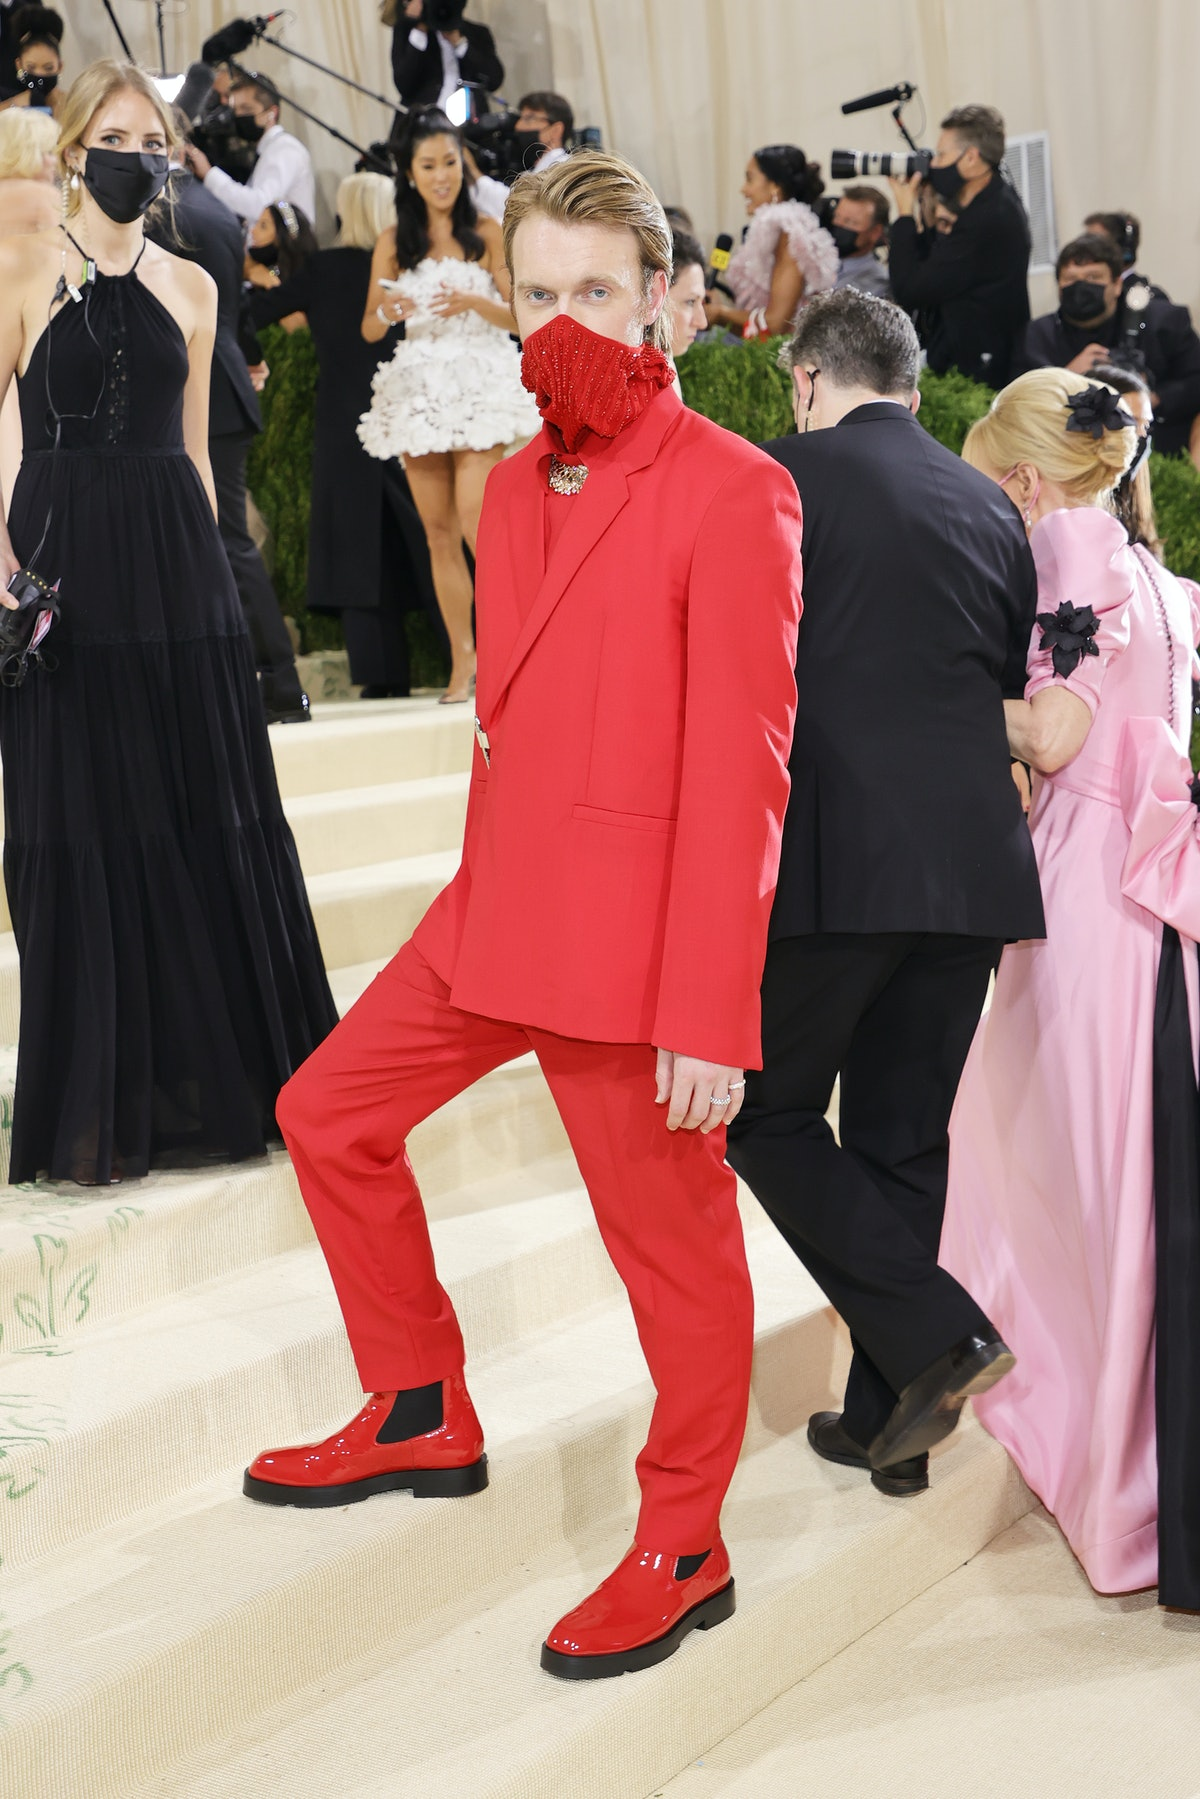 Finneas attends The 2021 Met Gala Celebrating In America: A Lexicon Of Fashion at Metropolitan Museu...